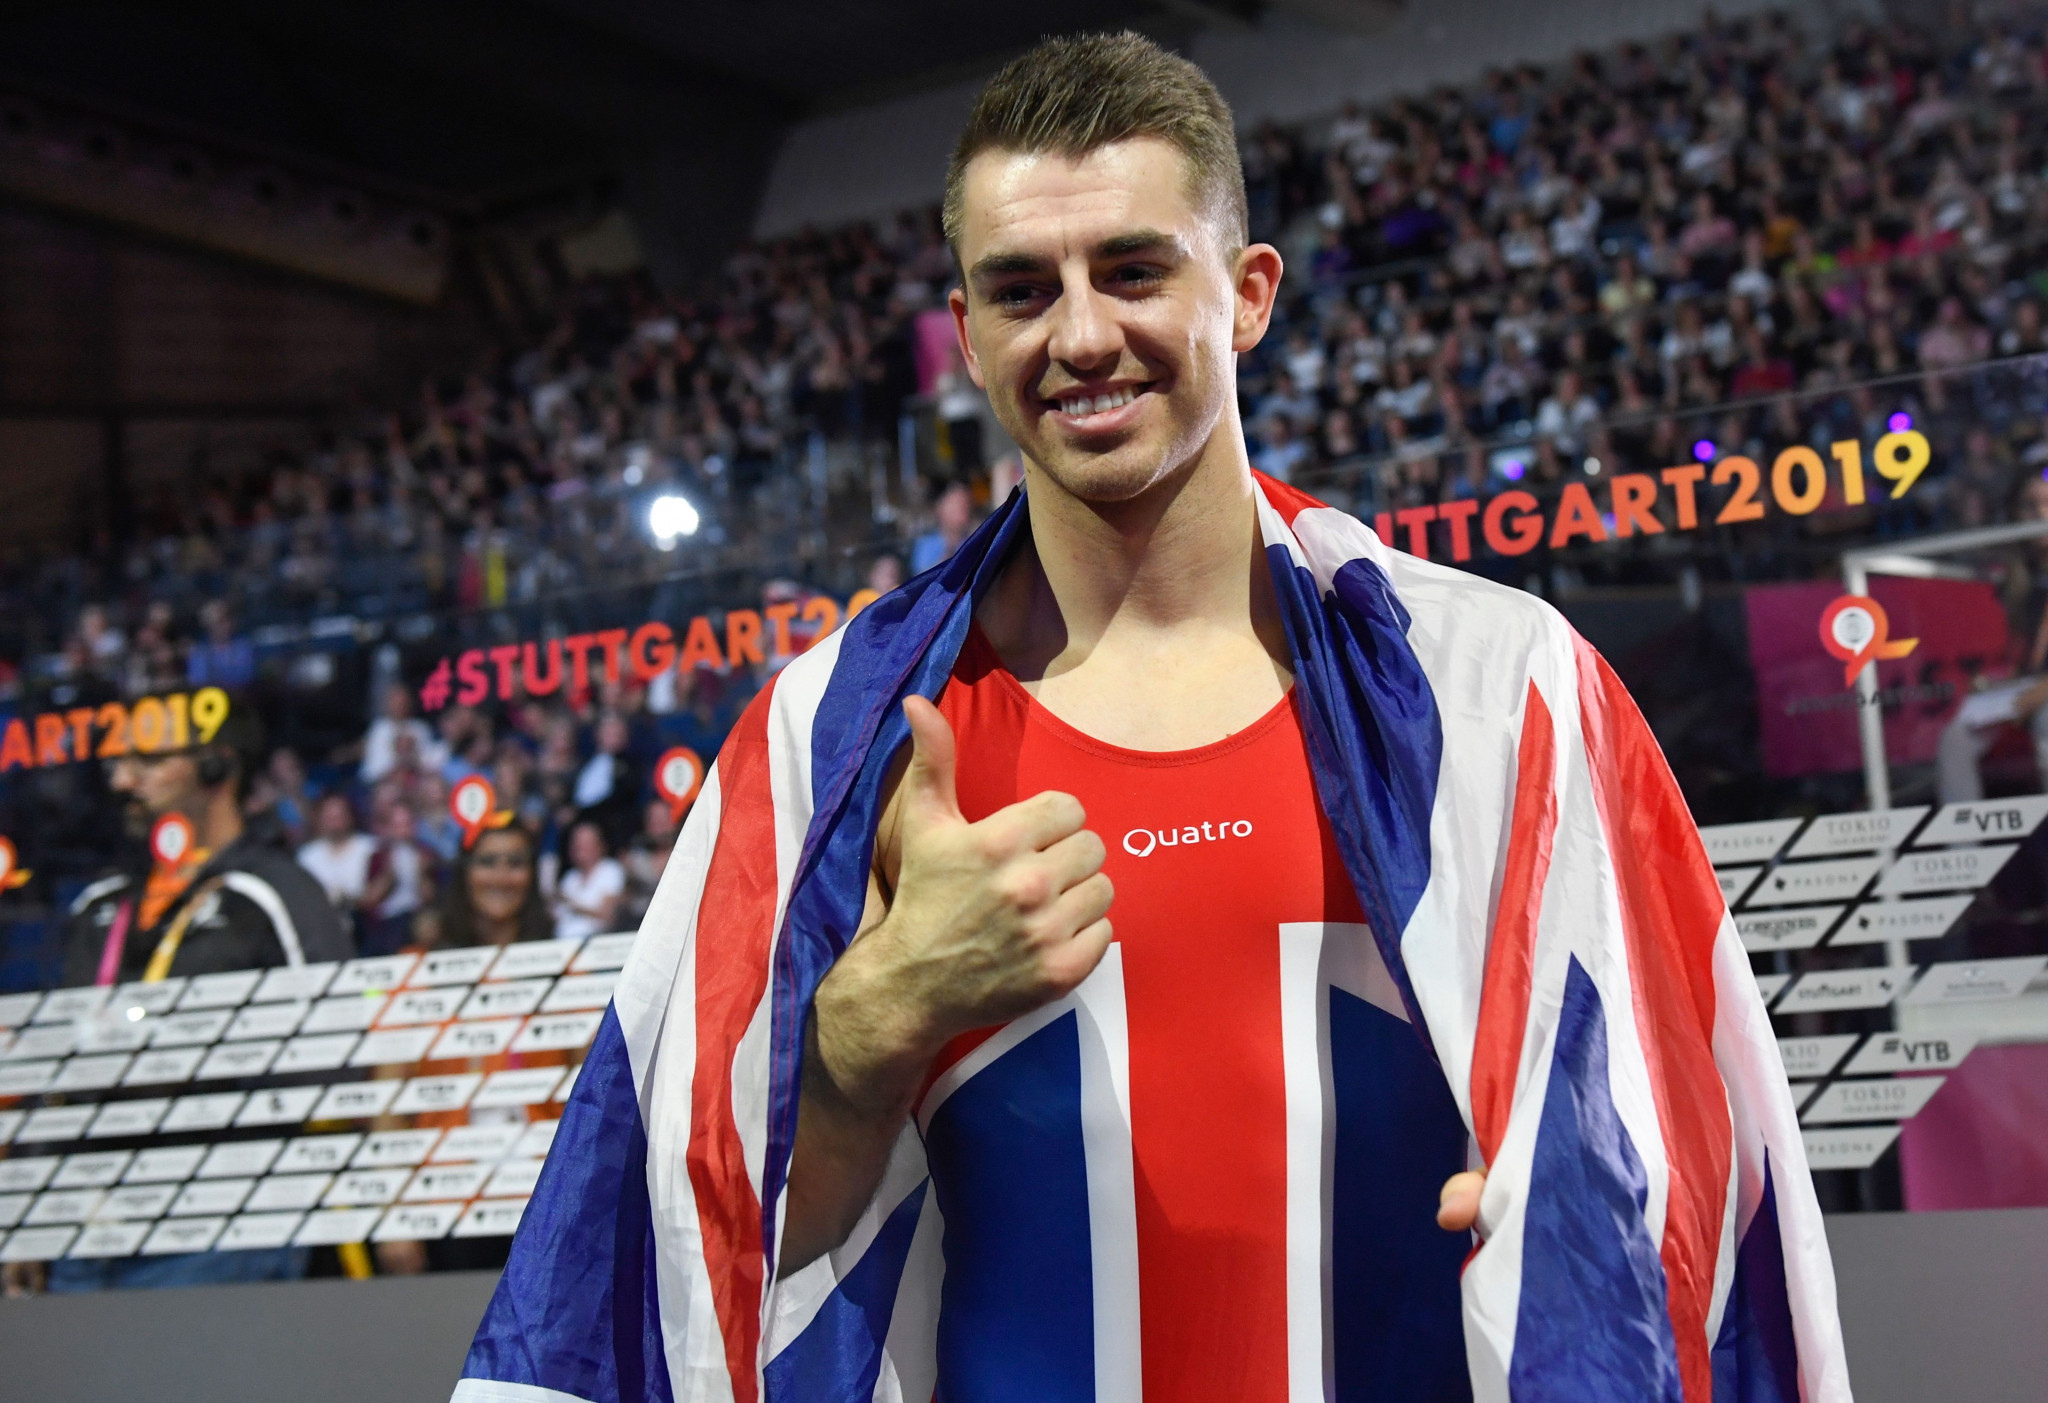 It was yet another special night for Britain's Max Whitlock ©Getty Images